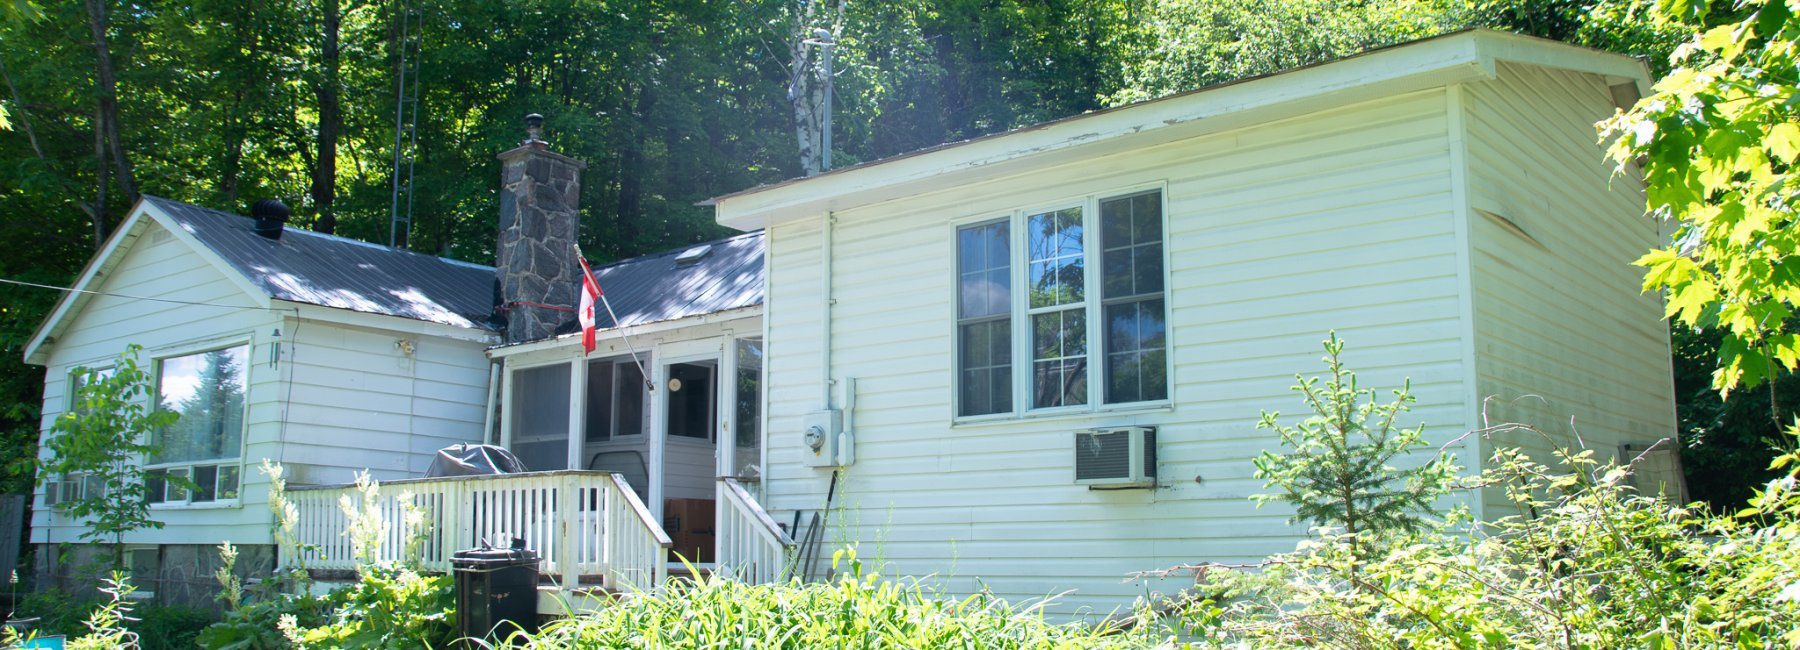 4673 County Road 21, Haliburton